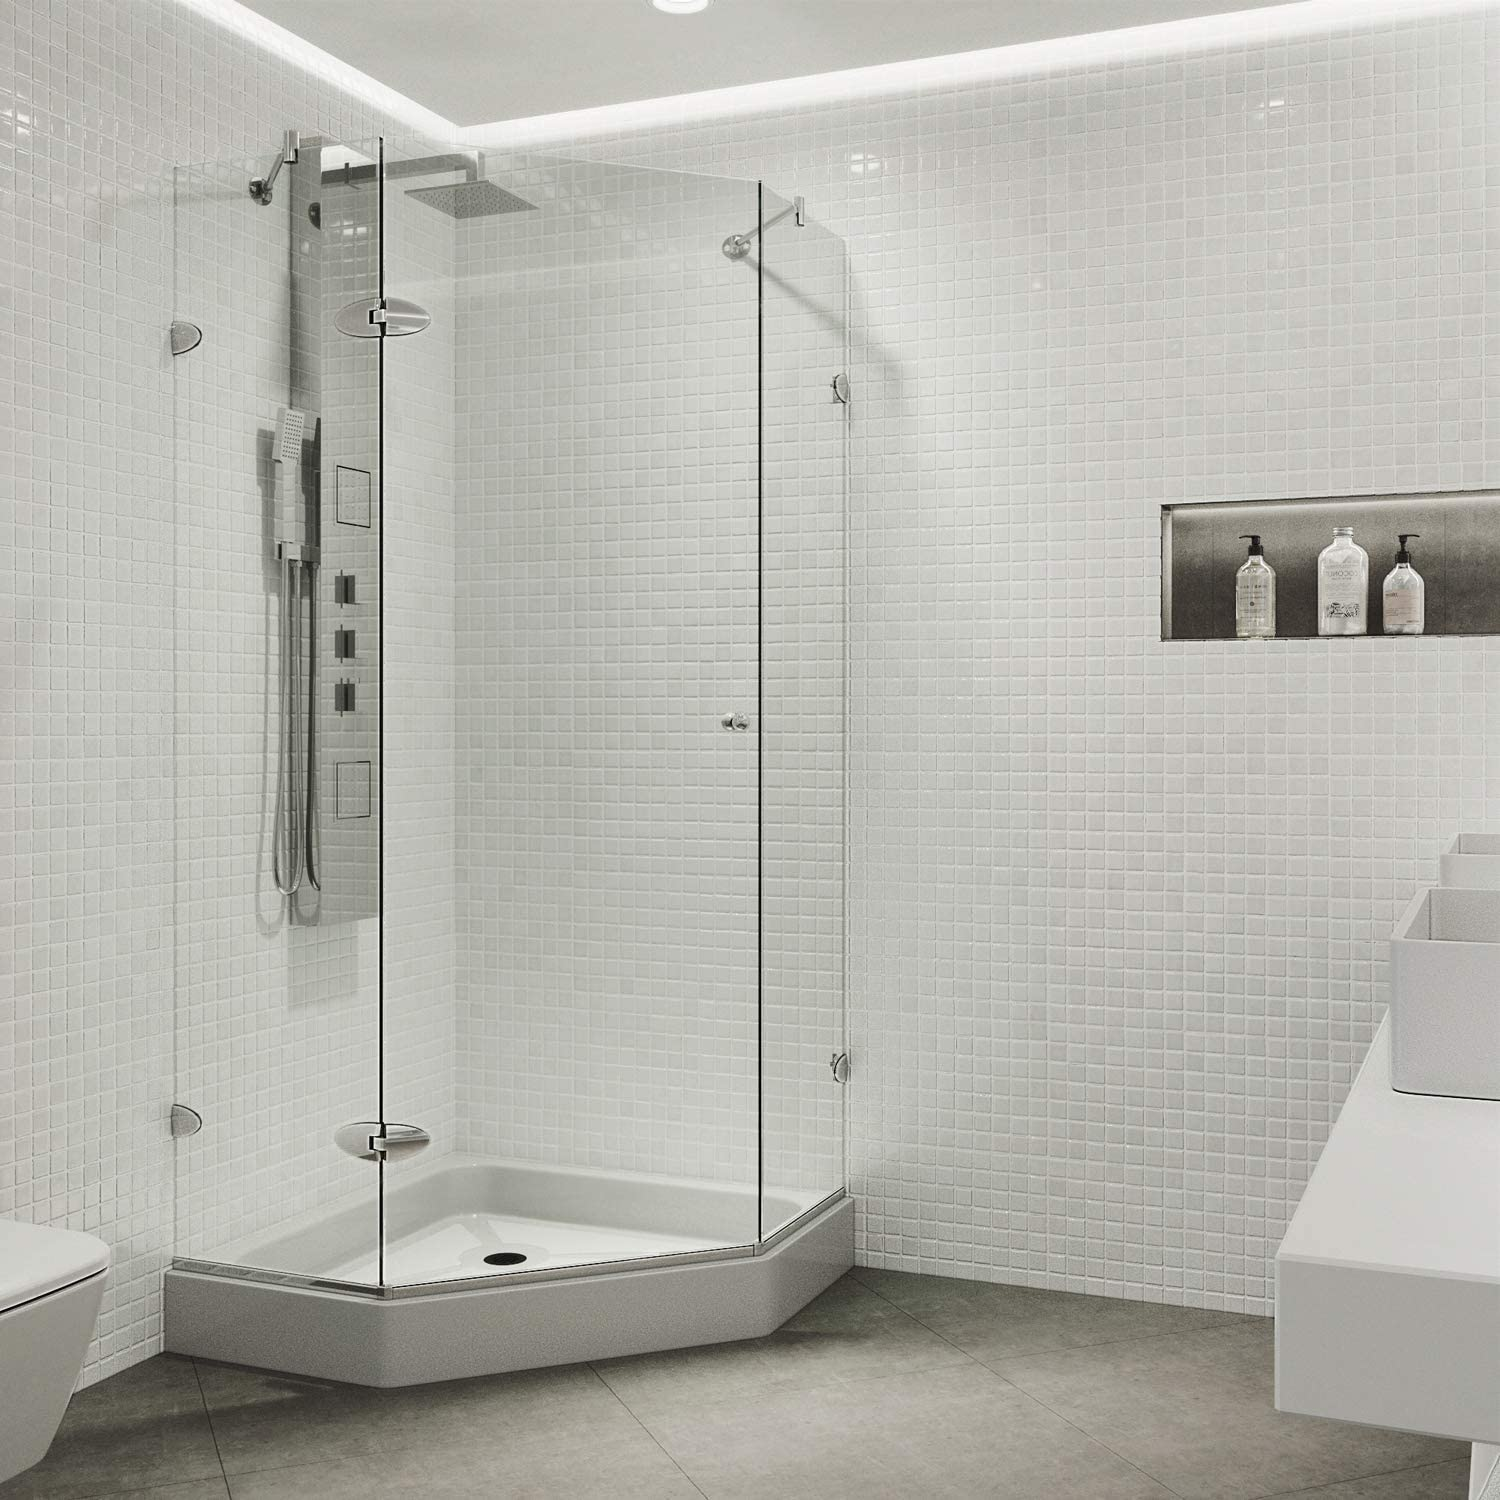 VIGO VG6061CHCL42W Verona 42 x 42 inch Clear Glass Corner Frameless Neo-Angle Shower Enclosure, Hinged Shower Door with Magnalock Technology, Non-Slip White Base, and 304 Stainless-Steel Shower Hardware in Chrome Finish